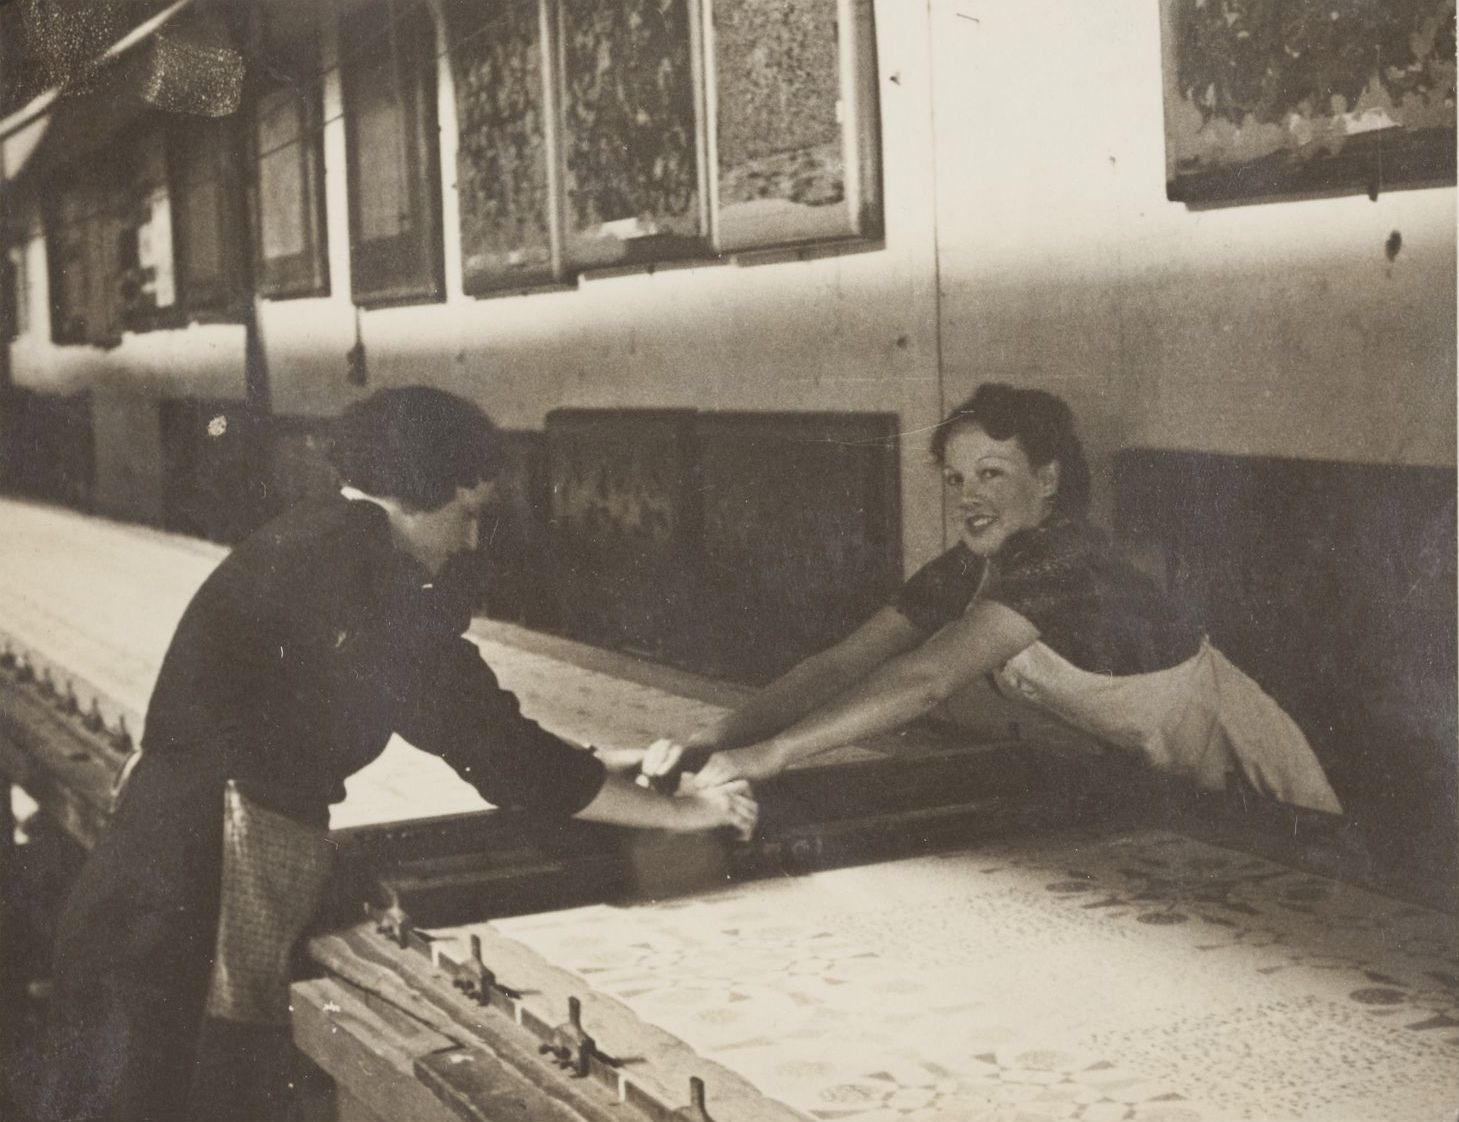 Women printing textiles at Gilkes & Co, Sydney